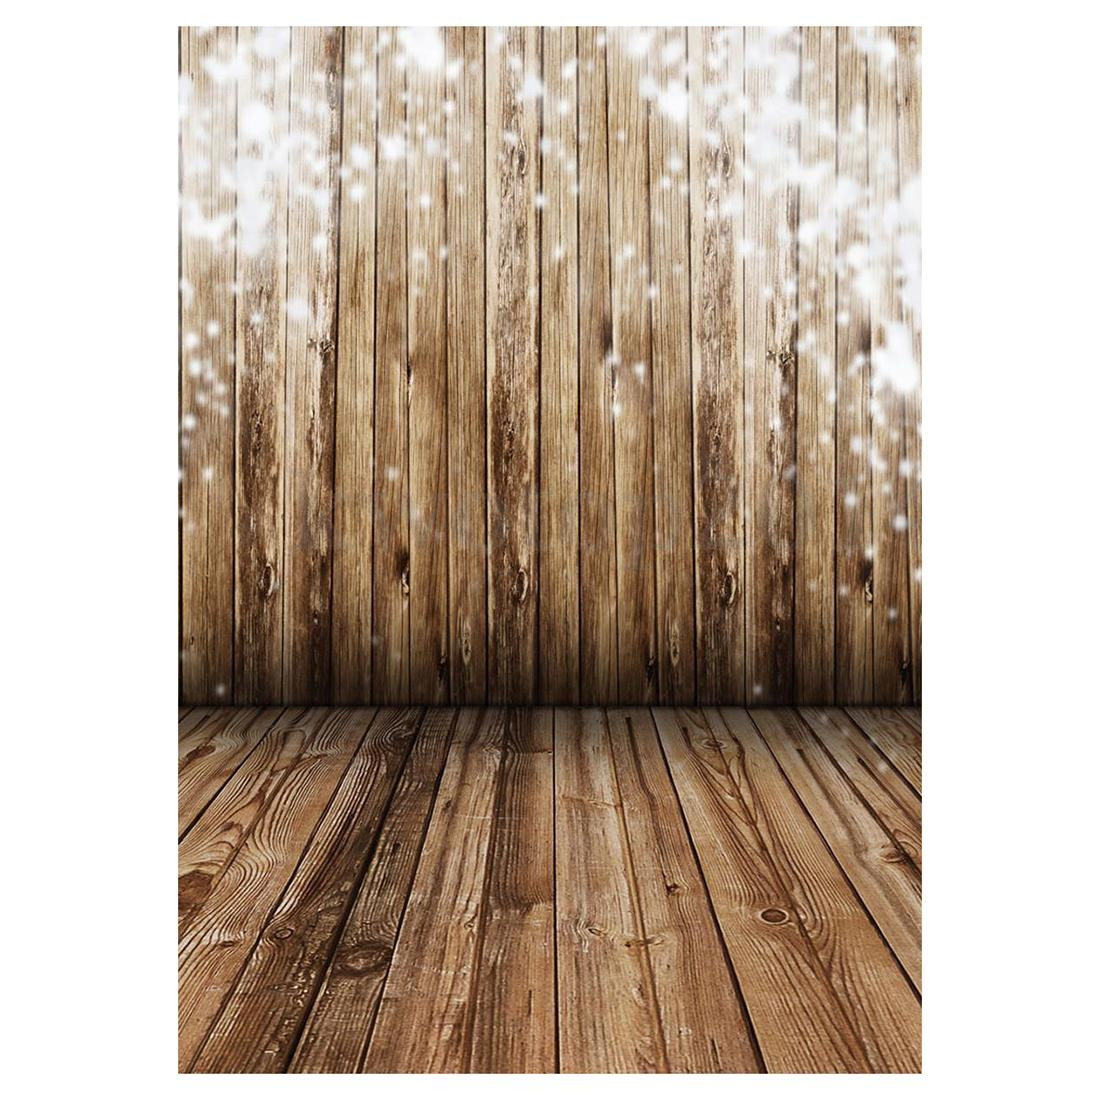 vinyl flooring like hardwood of 2018 3x5ft wood wall floor vinyl photography backdrop photo inside 2018 3x5ft wood wall floor vinyl photography backdrop photo background studio props from camerashome 33 53 dhgate com